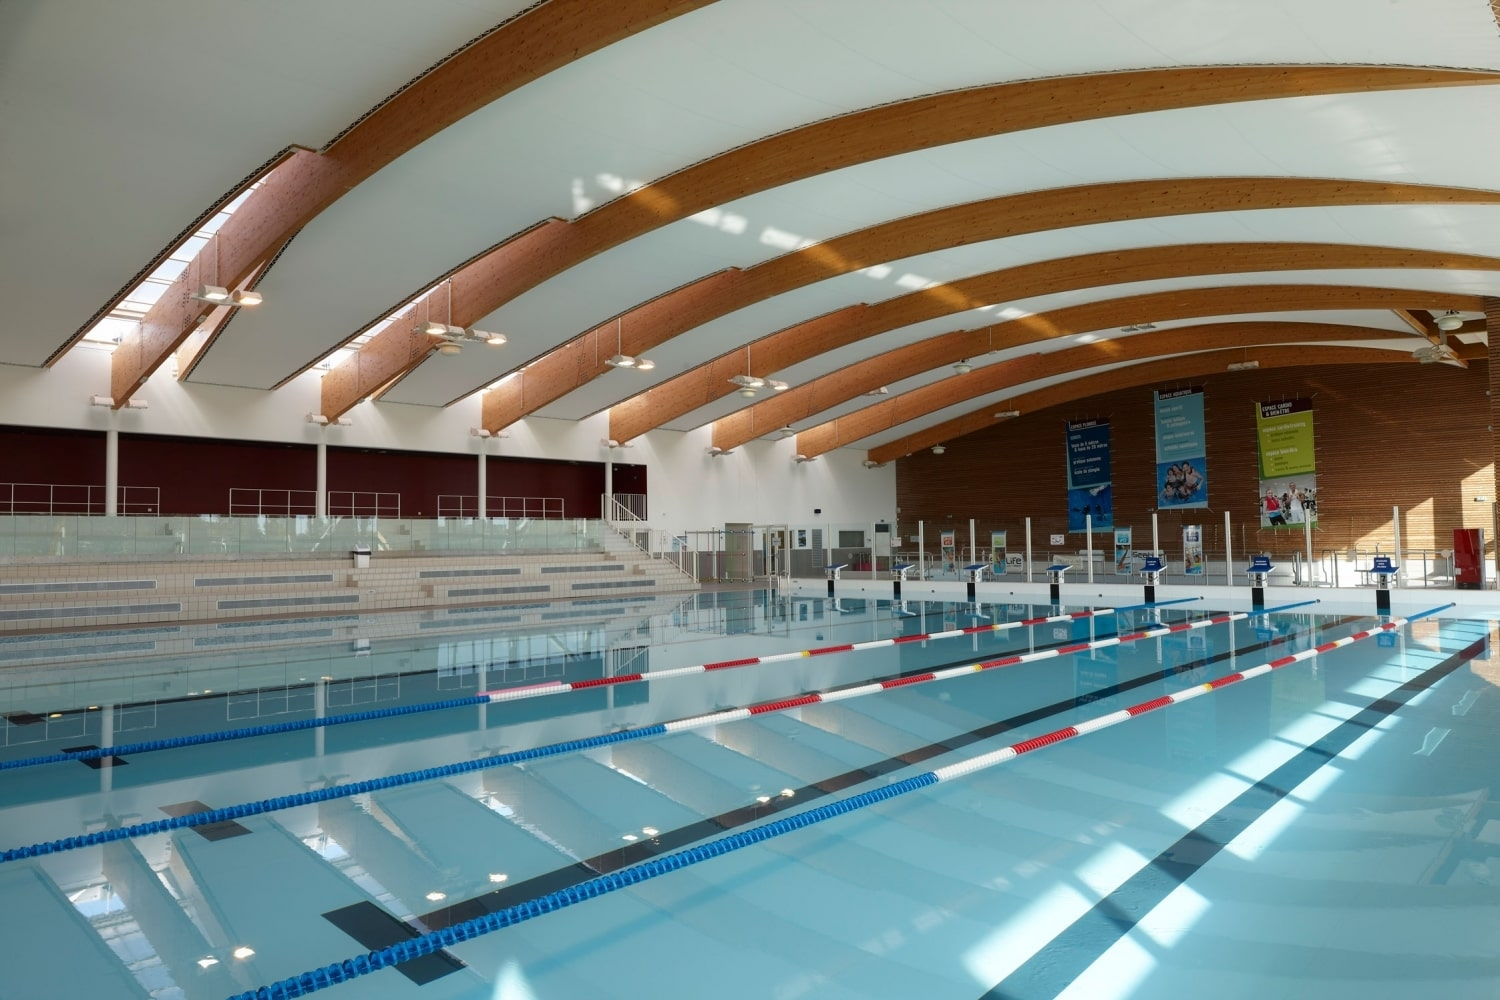 Meyzieu aquatic centre acoustic ceiling